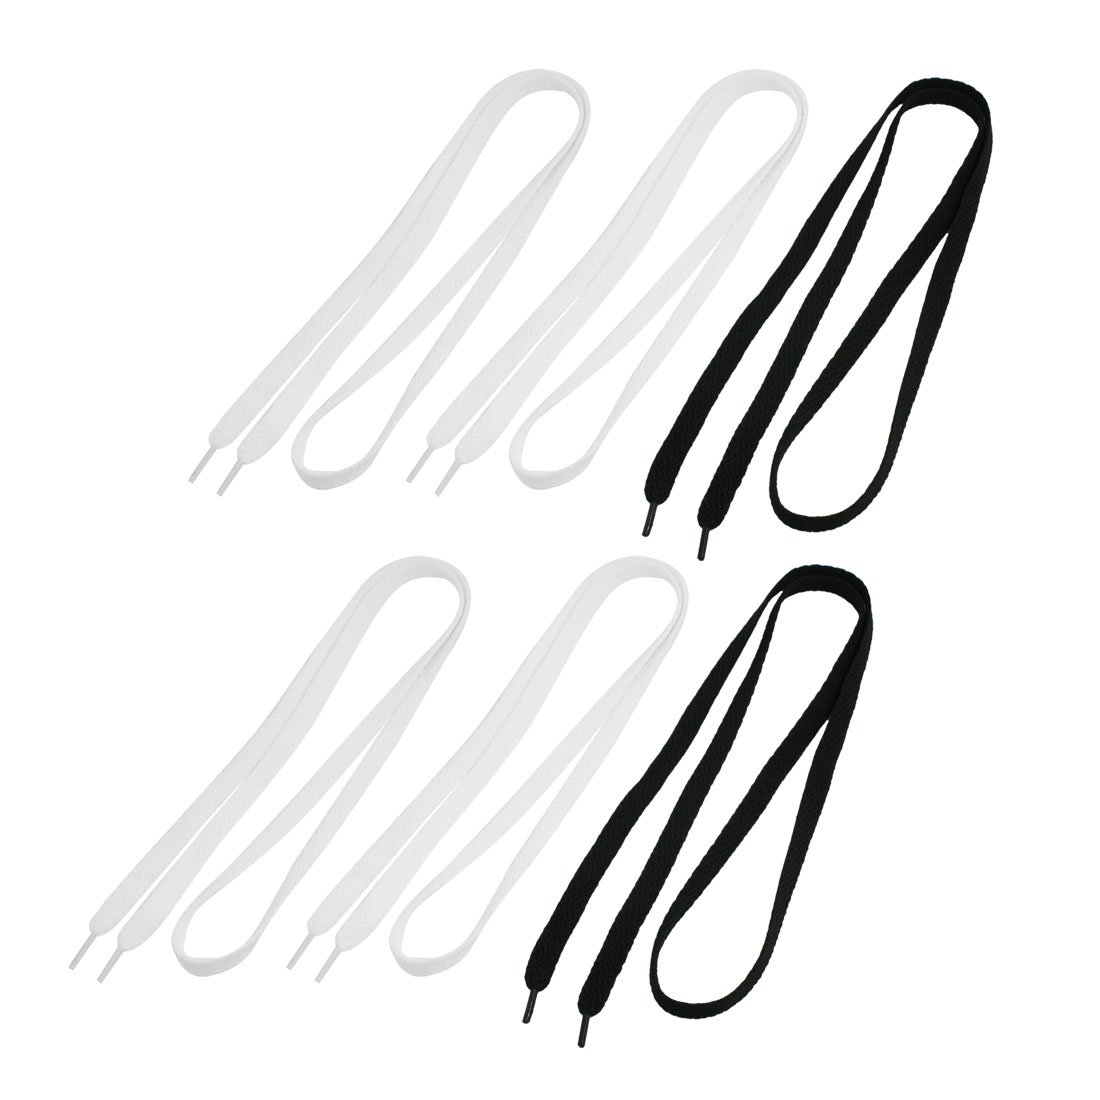 Unisex 3 Pairs White Black Nylon 1cm Wide Flat Shoelaces for Sneakers